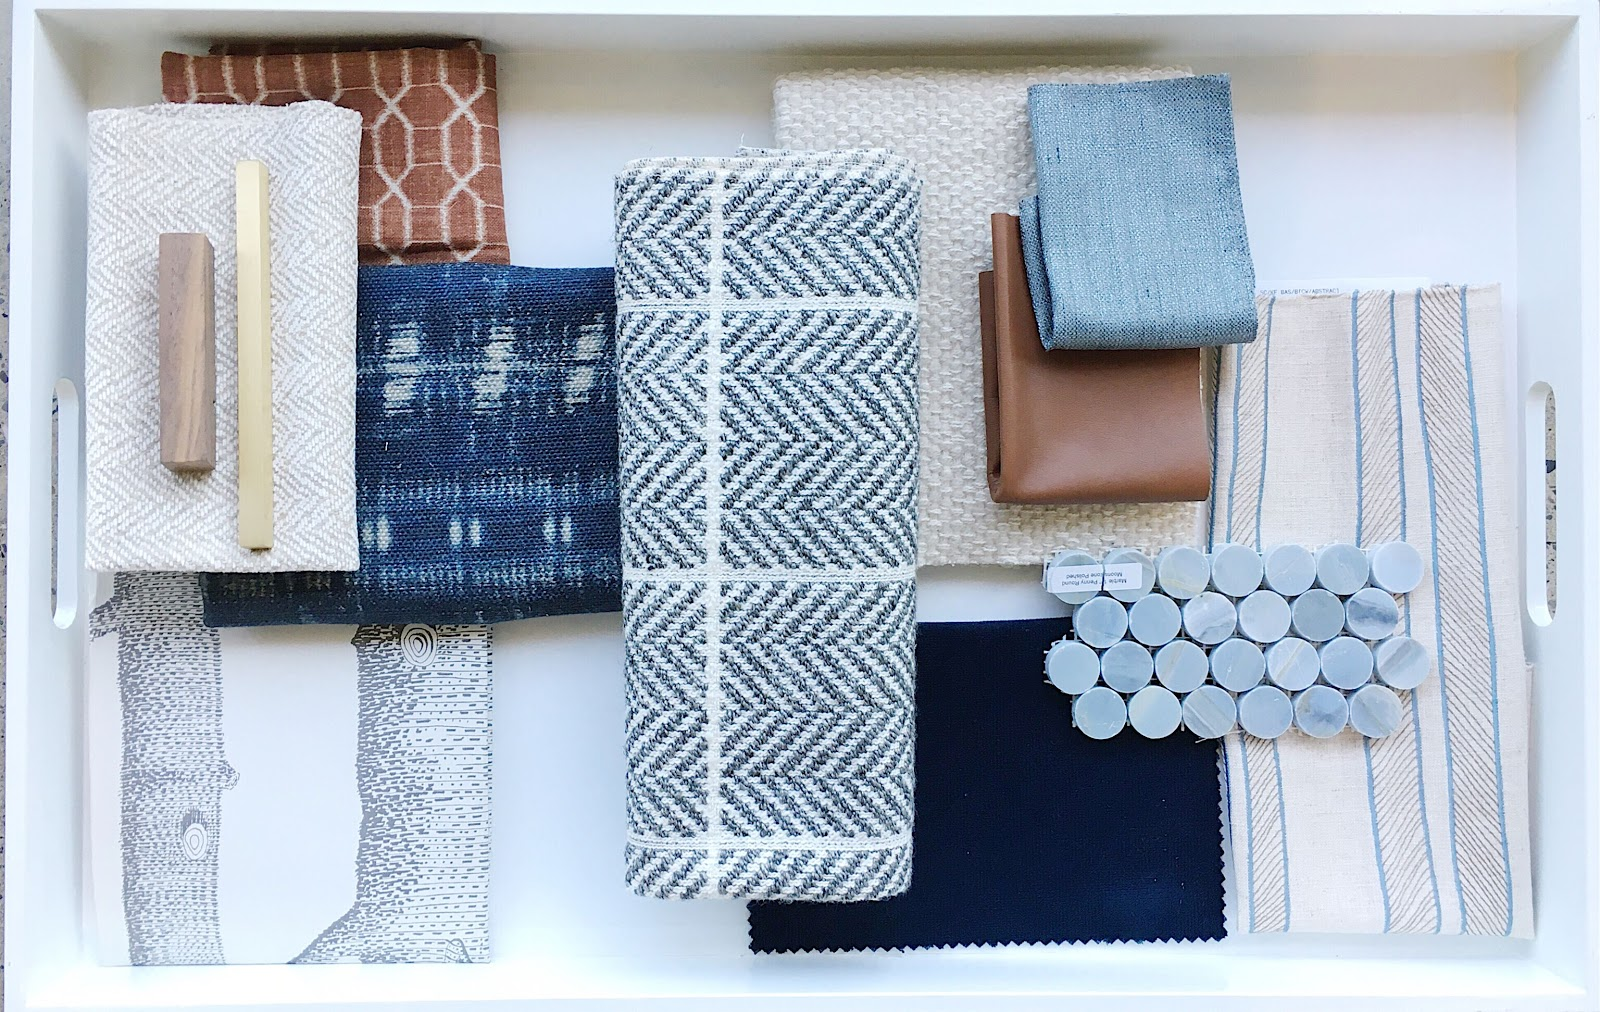 Calgary interior designer leanne bunnell explains how the process works, mood board, materials, concept in blues and browns